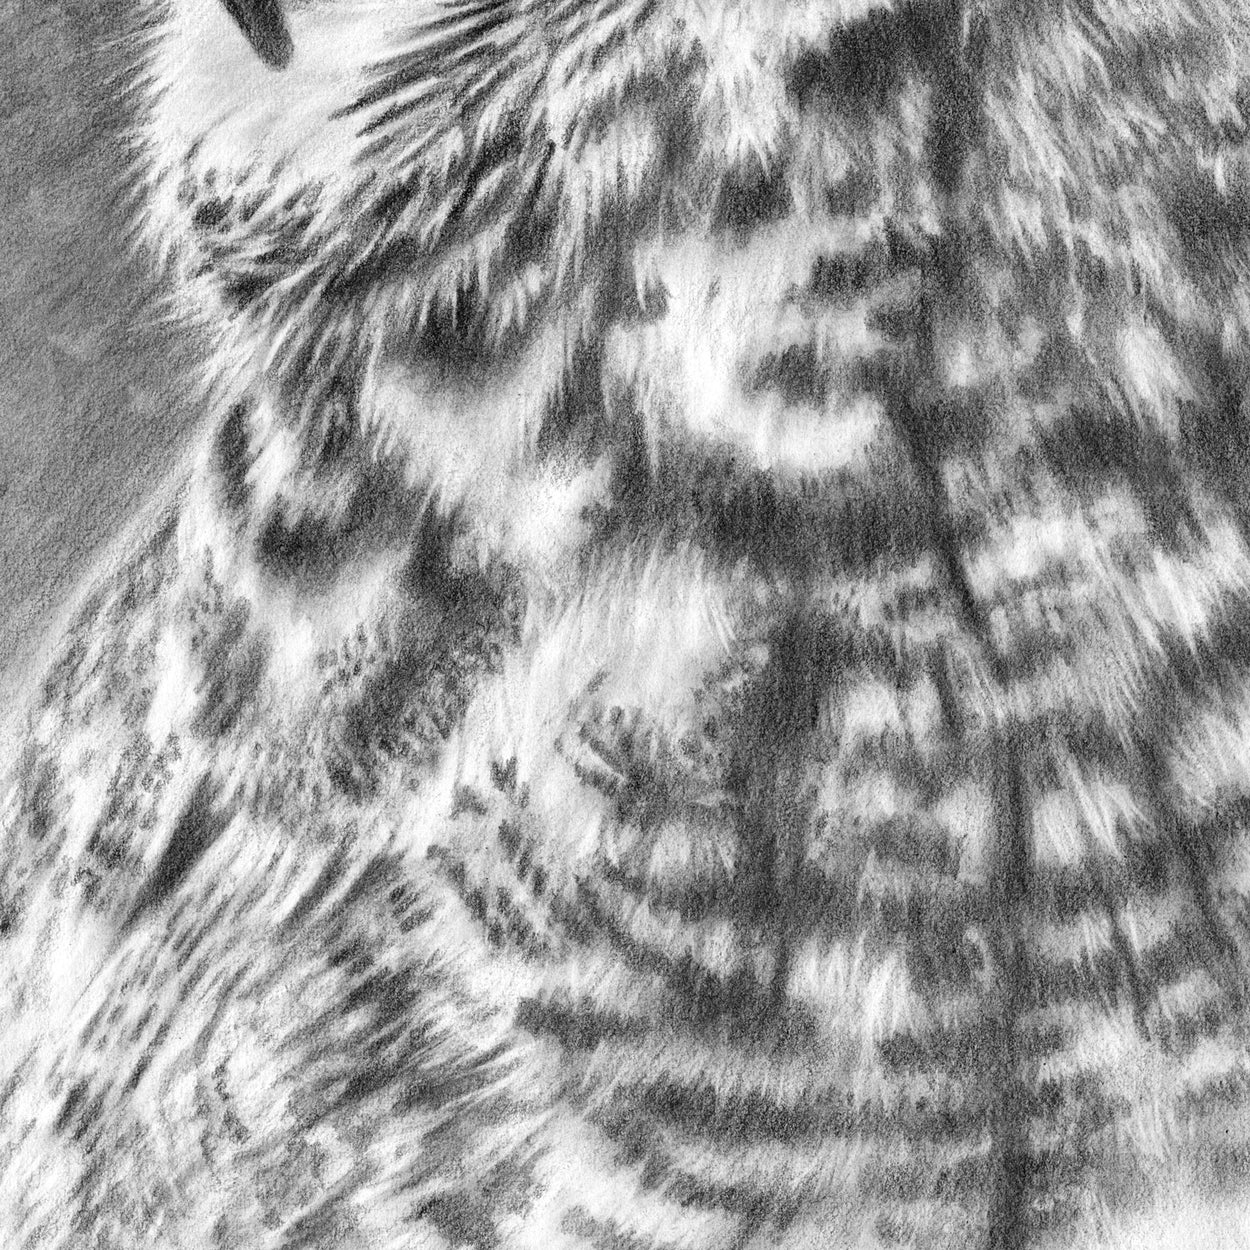 Great Horned Owl Drawing CLose-up 3 - The Thriving Wild